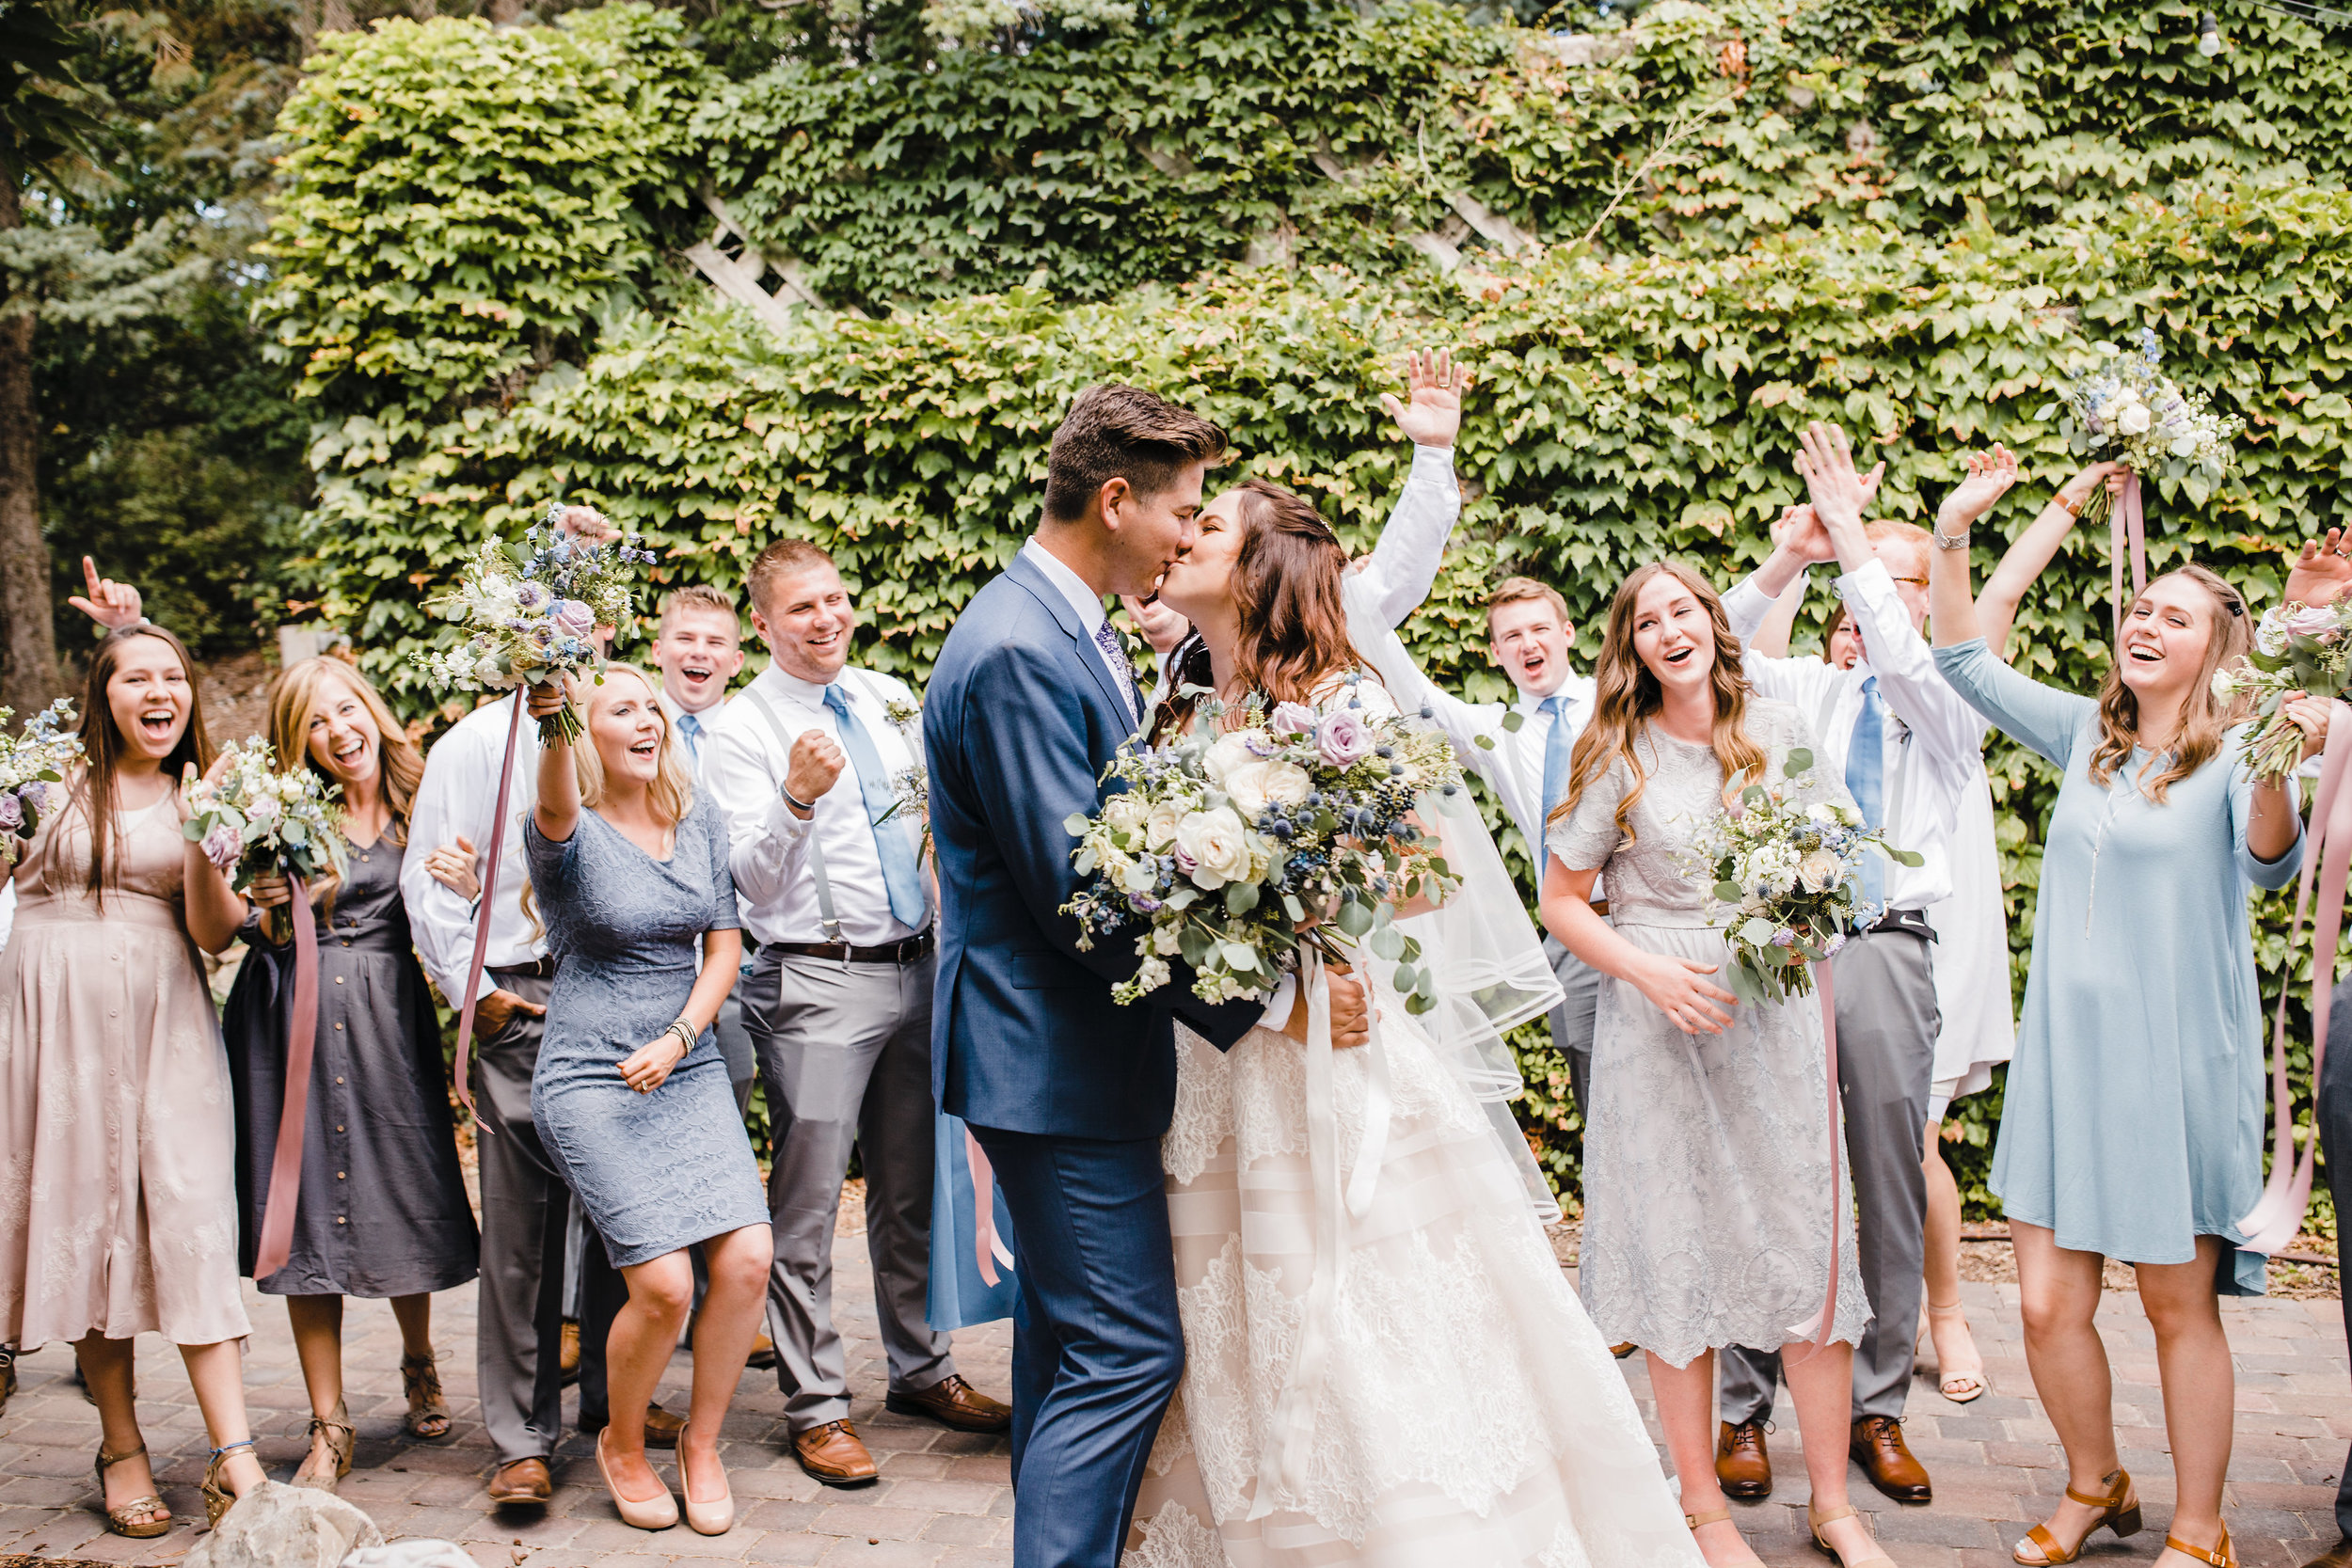 best professional wedding photographer in utah valley wedding party neutral dresses cheering happy kissing